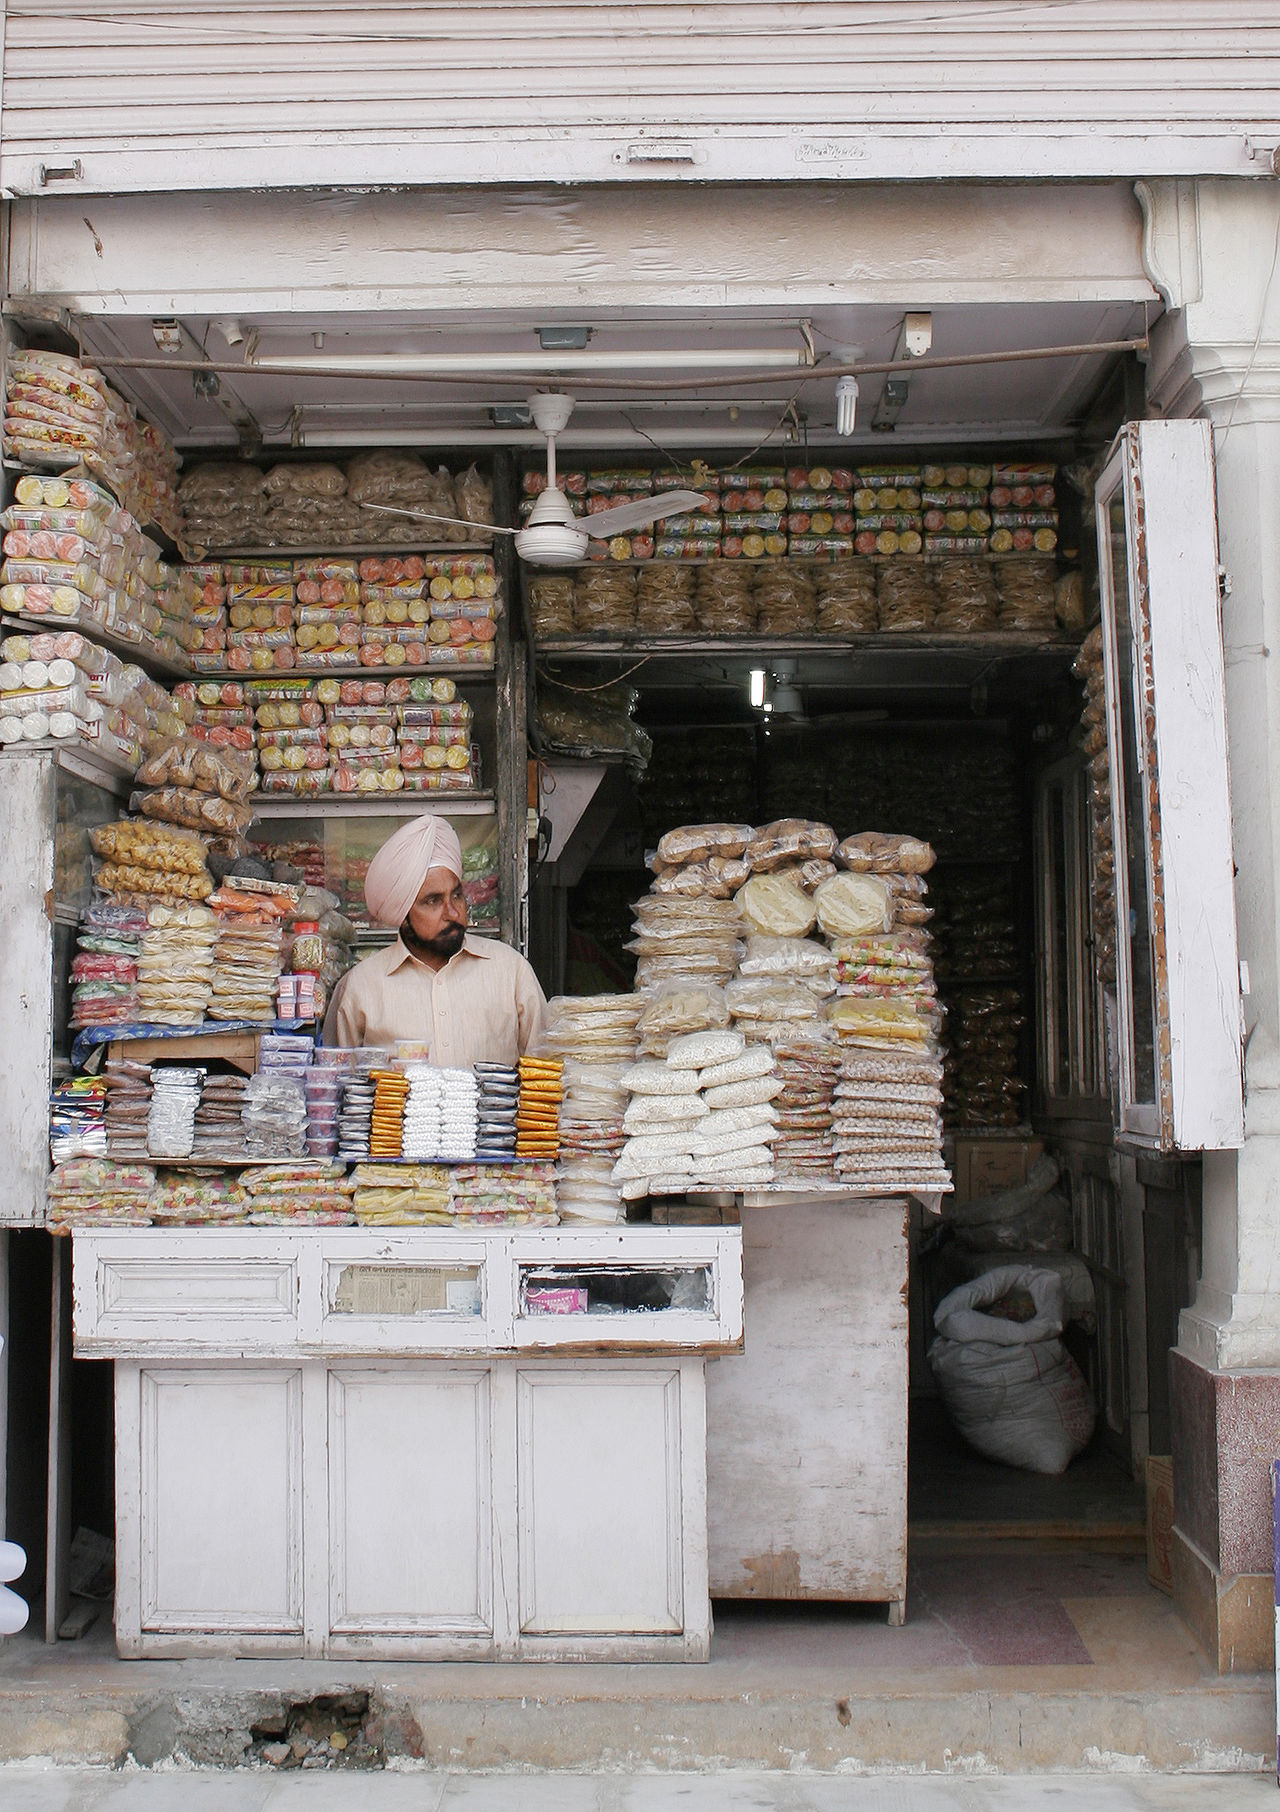 Abundance Arrangement For Sale Golden Temple India Indian Ethnicity Indian Man Turban Indian Sweets Large Group Of Objects Little Shop Market Market Stall Market Vendor Old Old Market Real People Retail  Sweet Food Sweets Turban Vendor Vibrant Colors Waiting Waiting For A Customer Telling Stories Differently